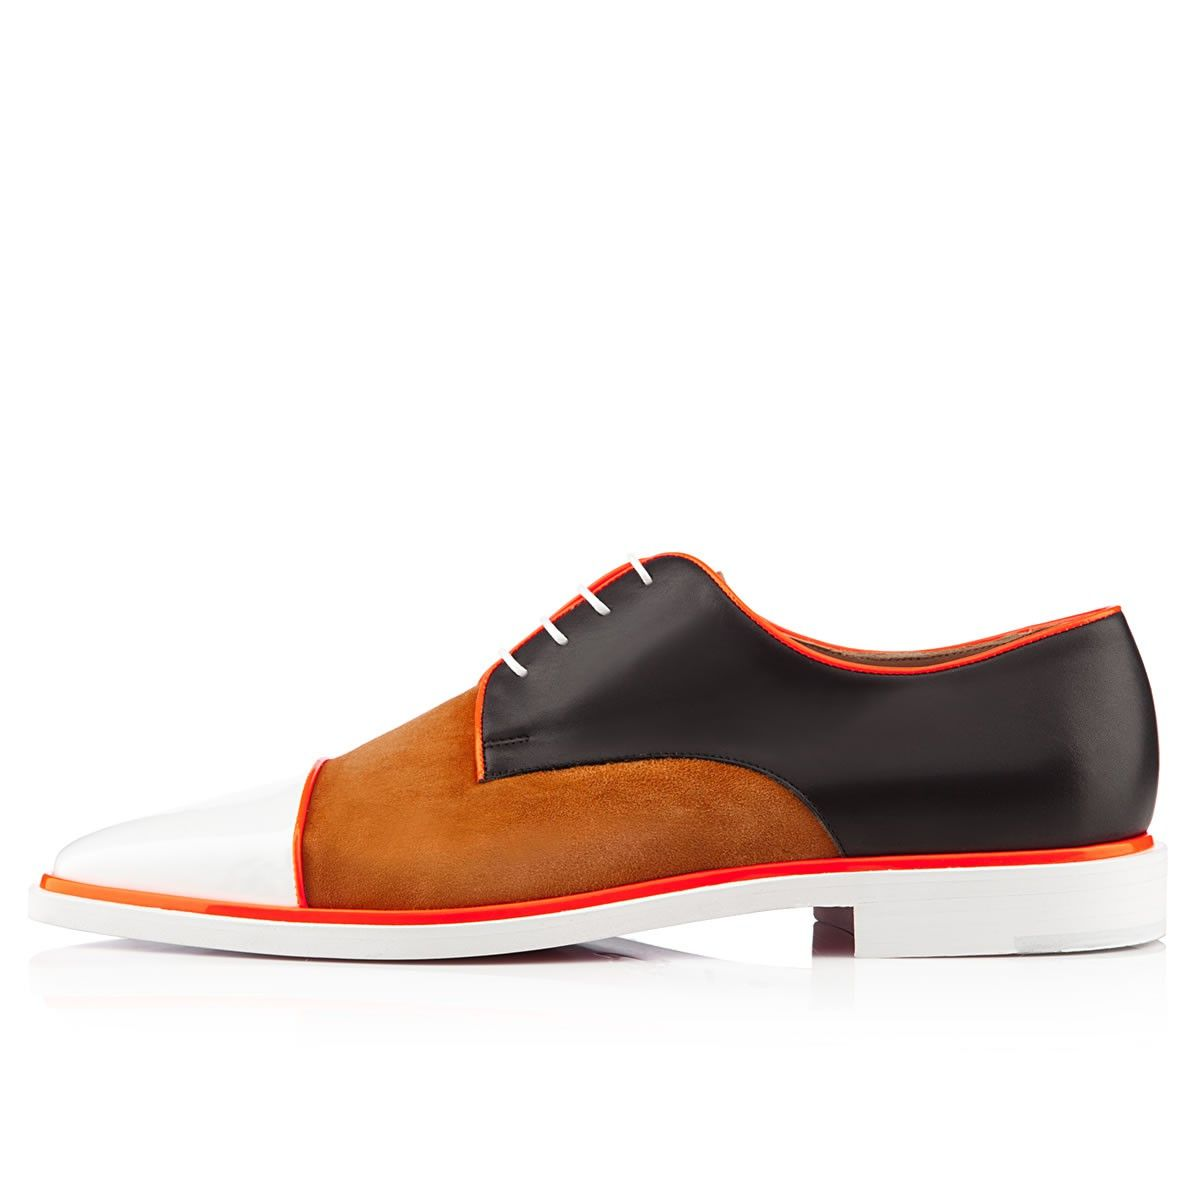 c9eb0ad818dc Christian Louboutin Bruno Orlato Loafers WhiteFauve0 hunting for limited  offer